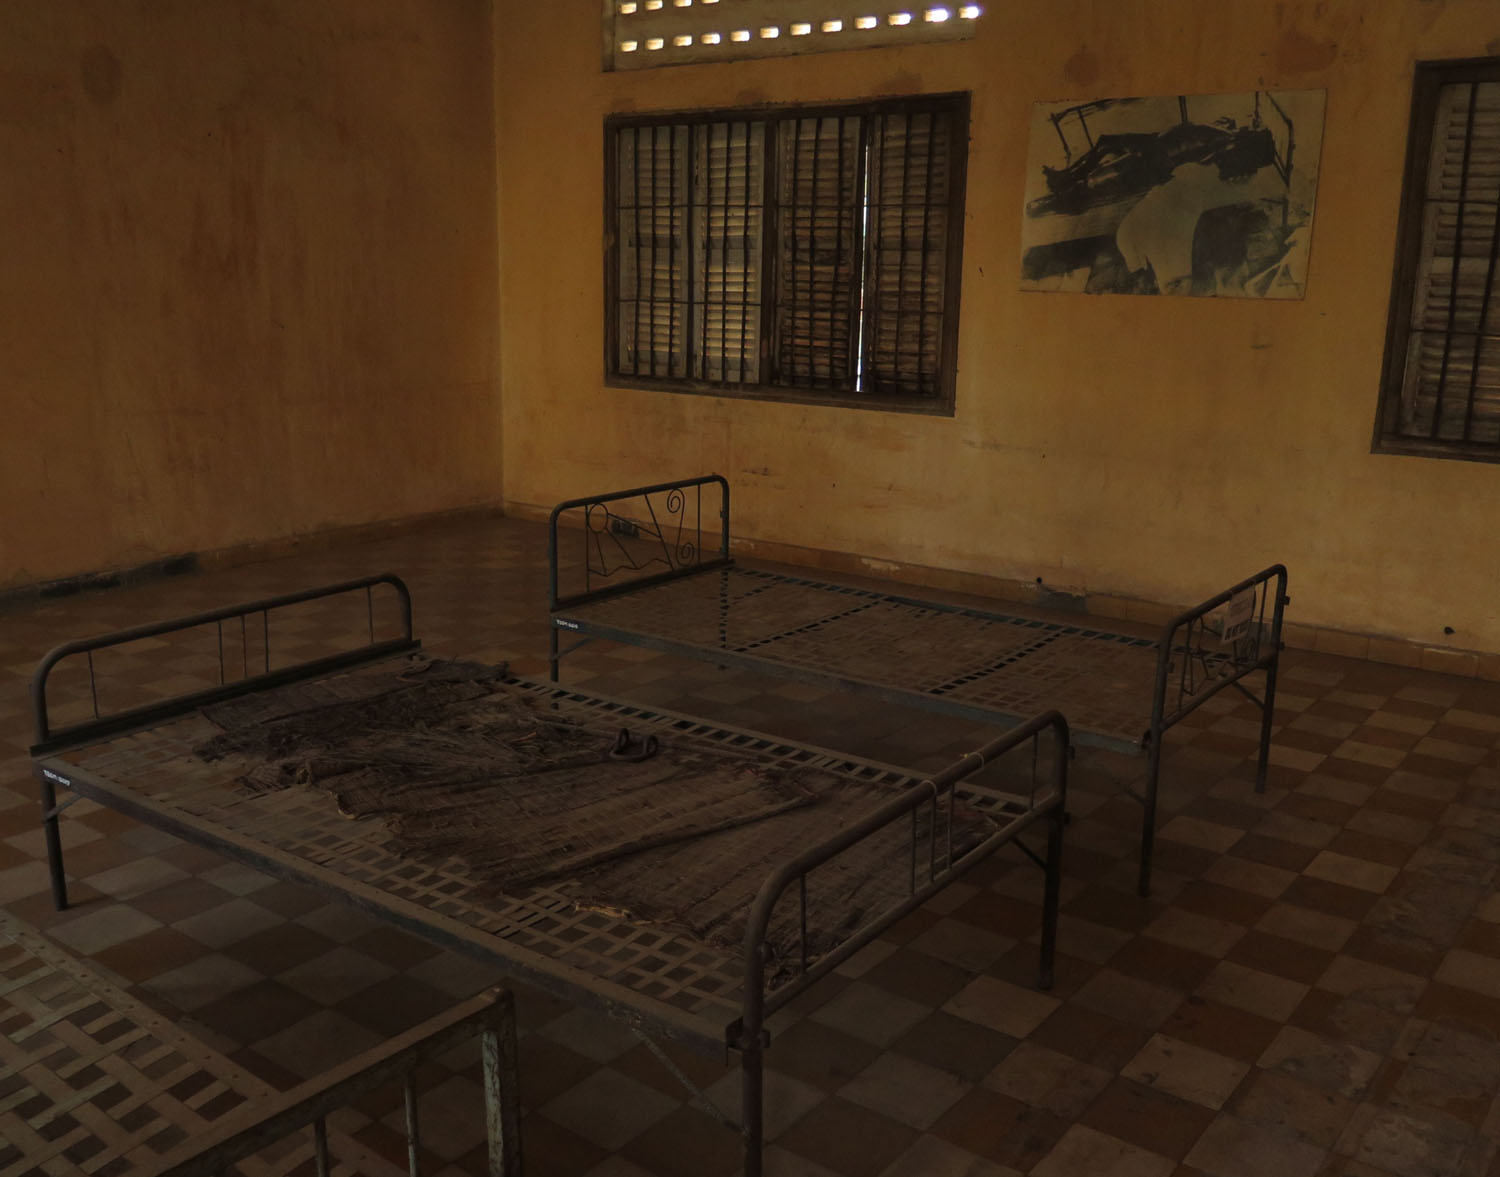 Cambodia-The-Killing-Fields-S-21-Torture-Bed